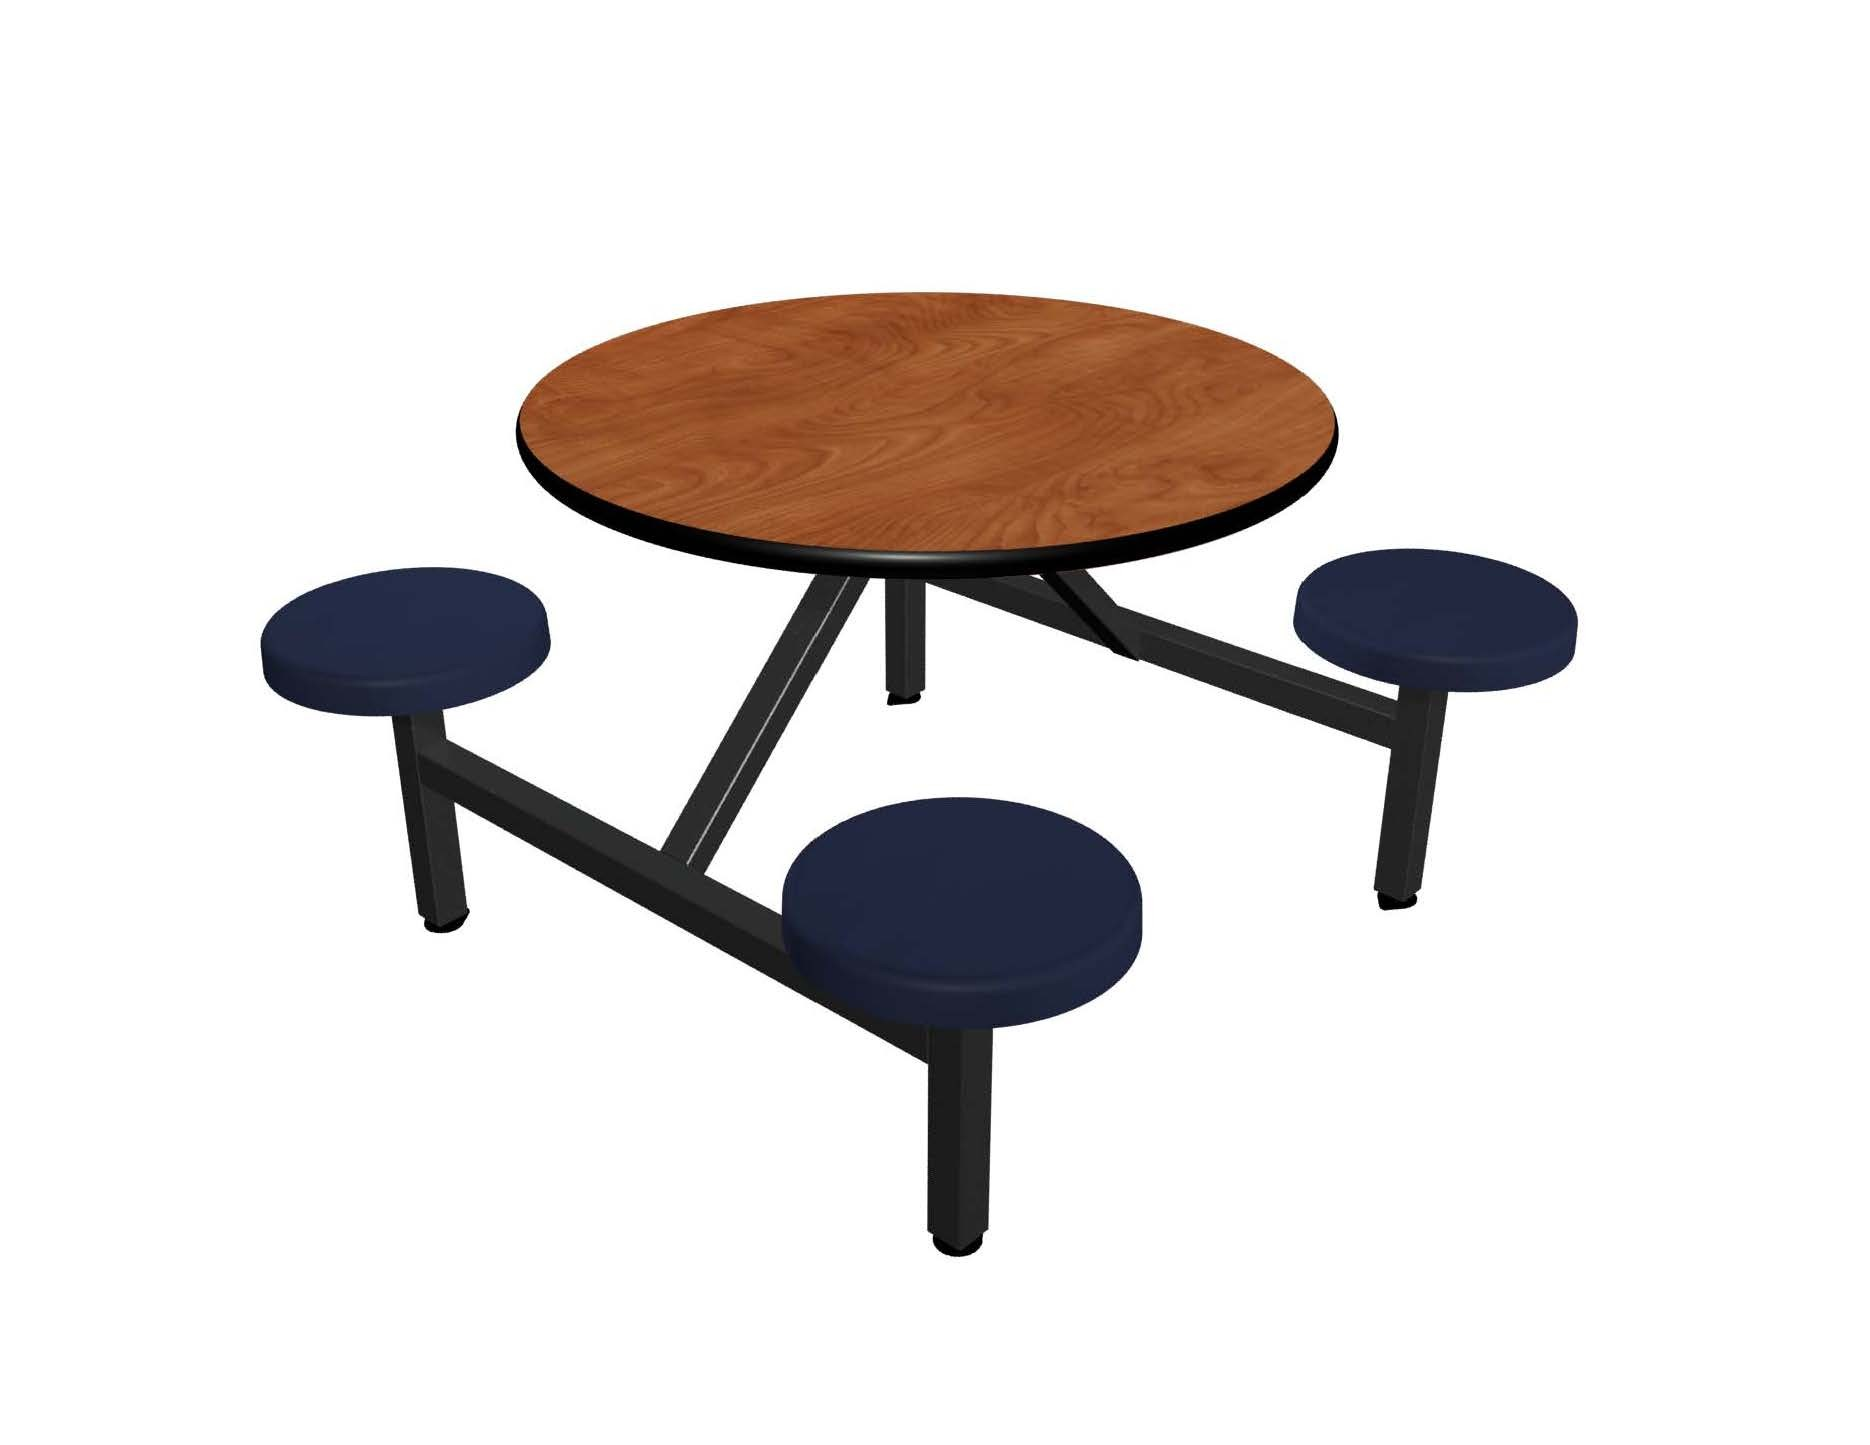 Wild Cherry laminate table top, Black vinyl edge, Navy composite seat